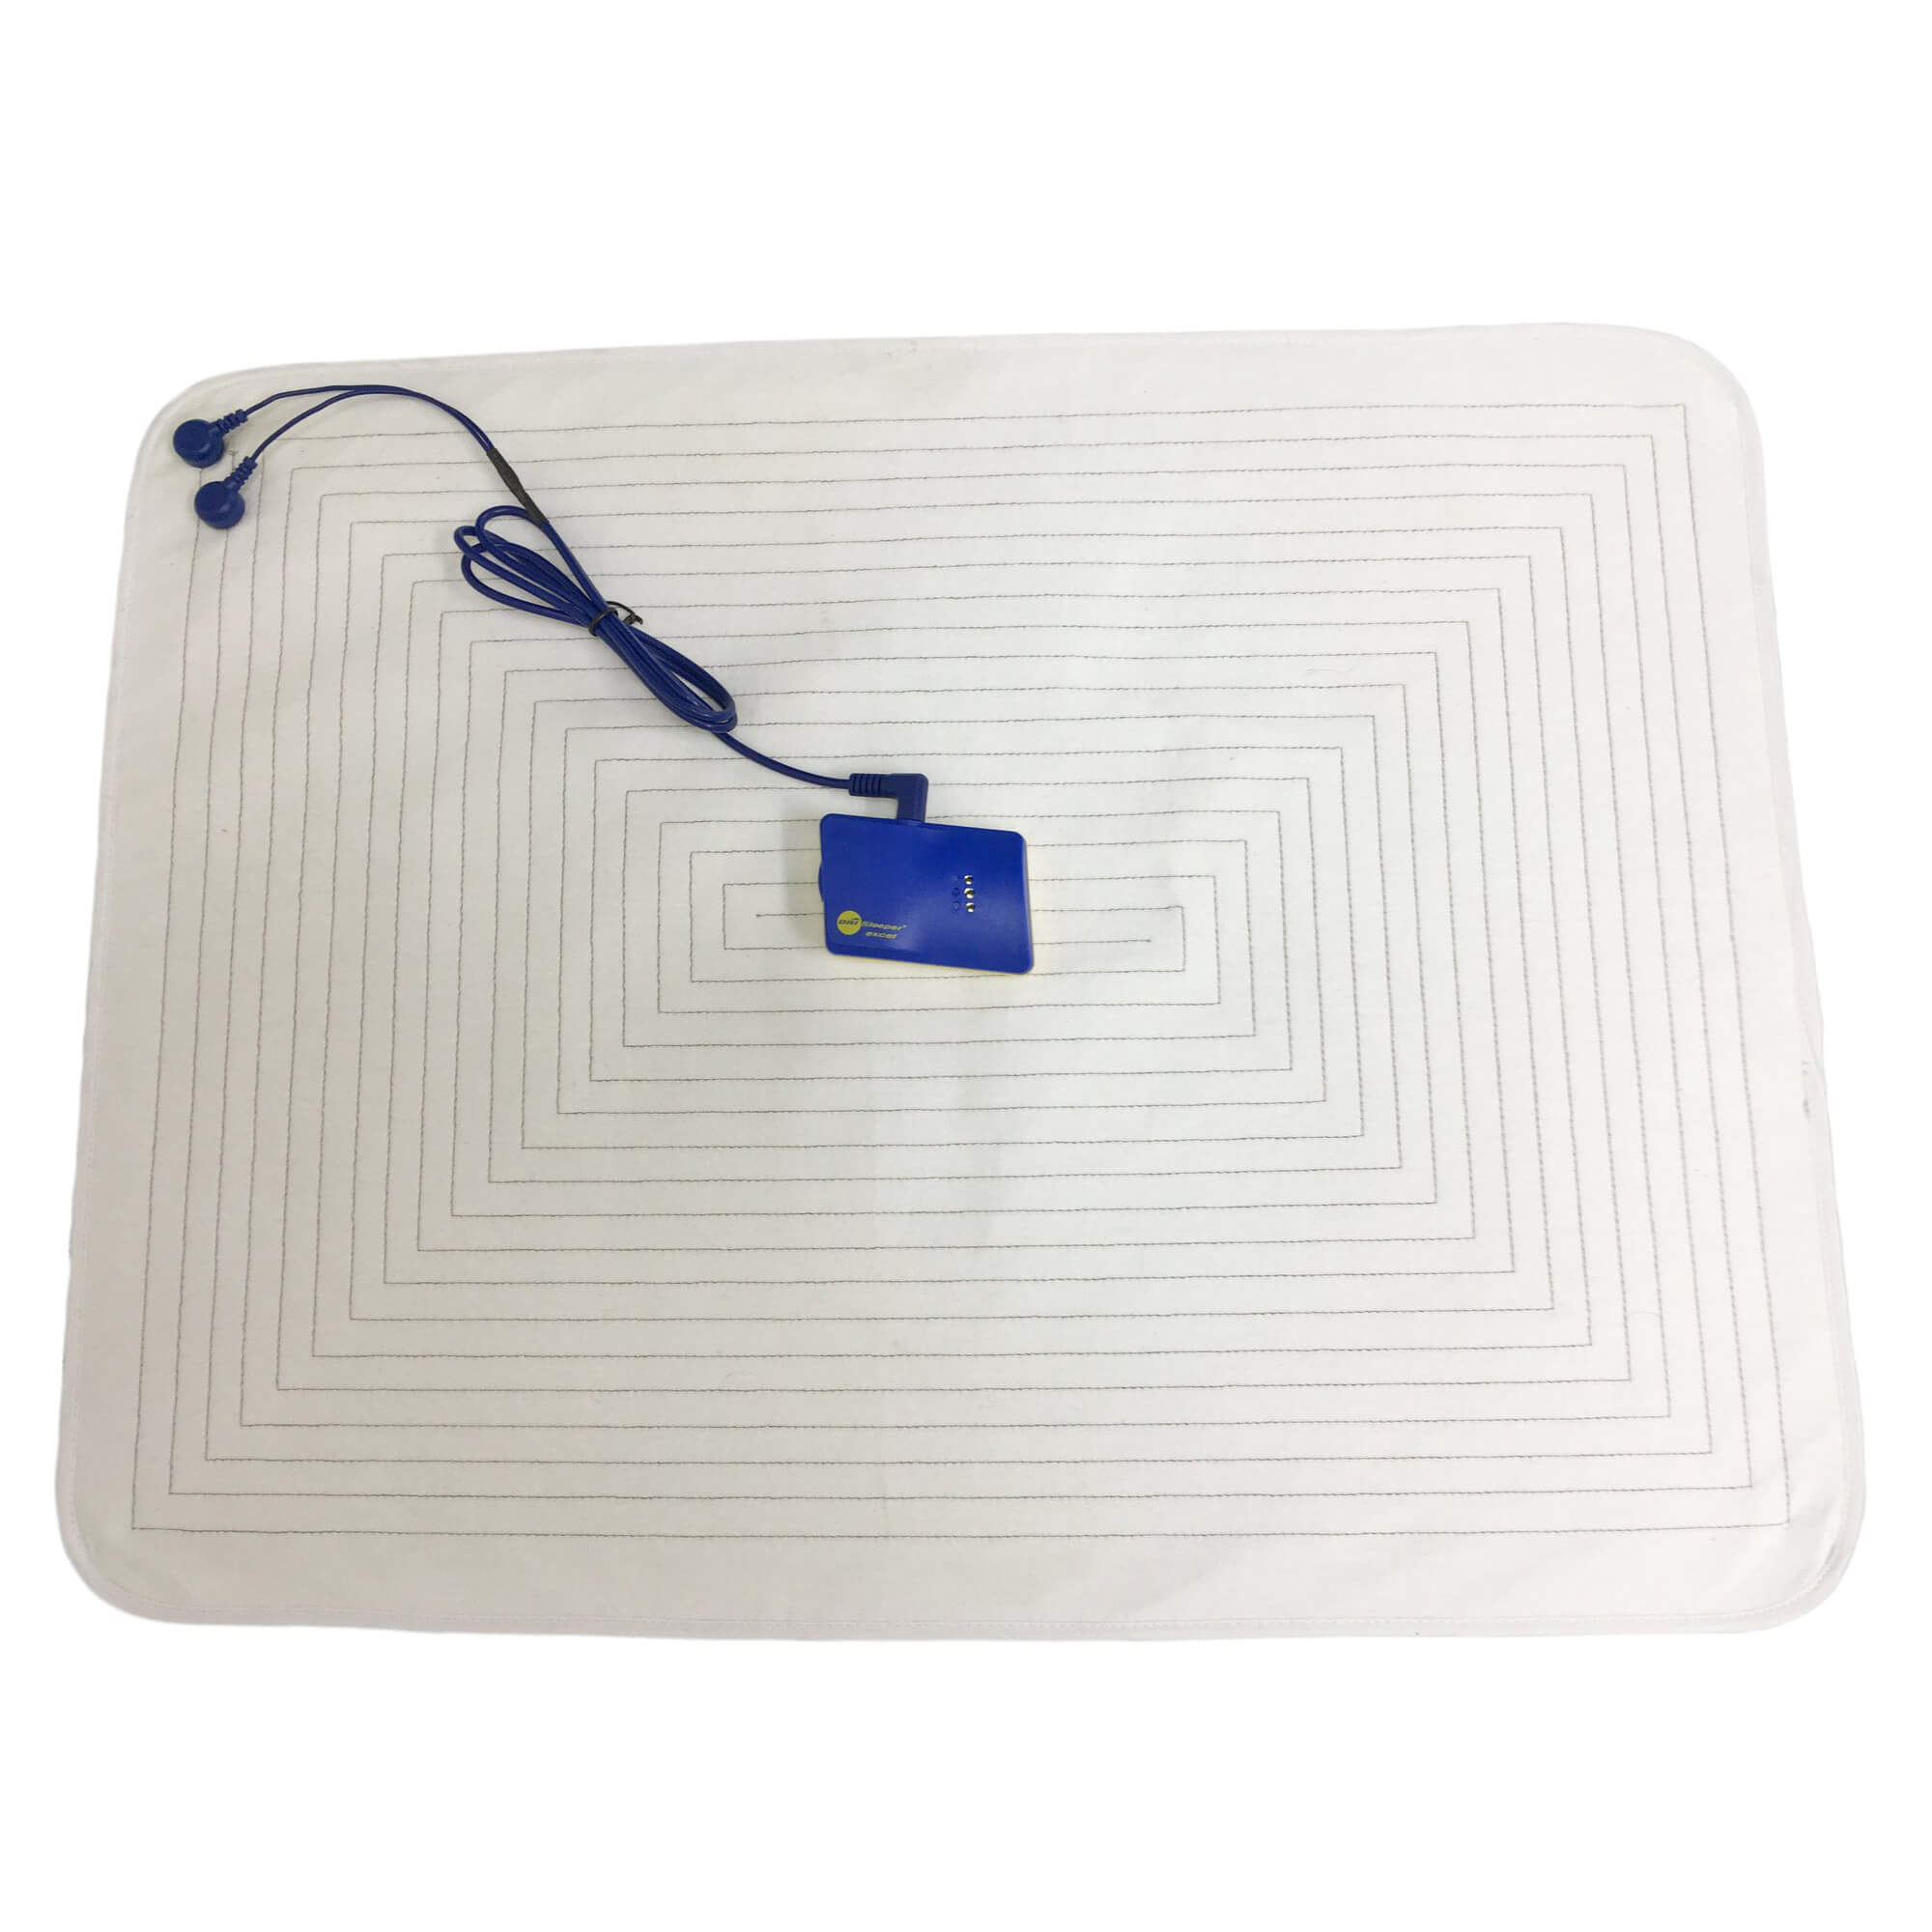 DRI Sleeper Excel with Smartfabric Sensor